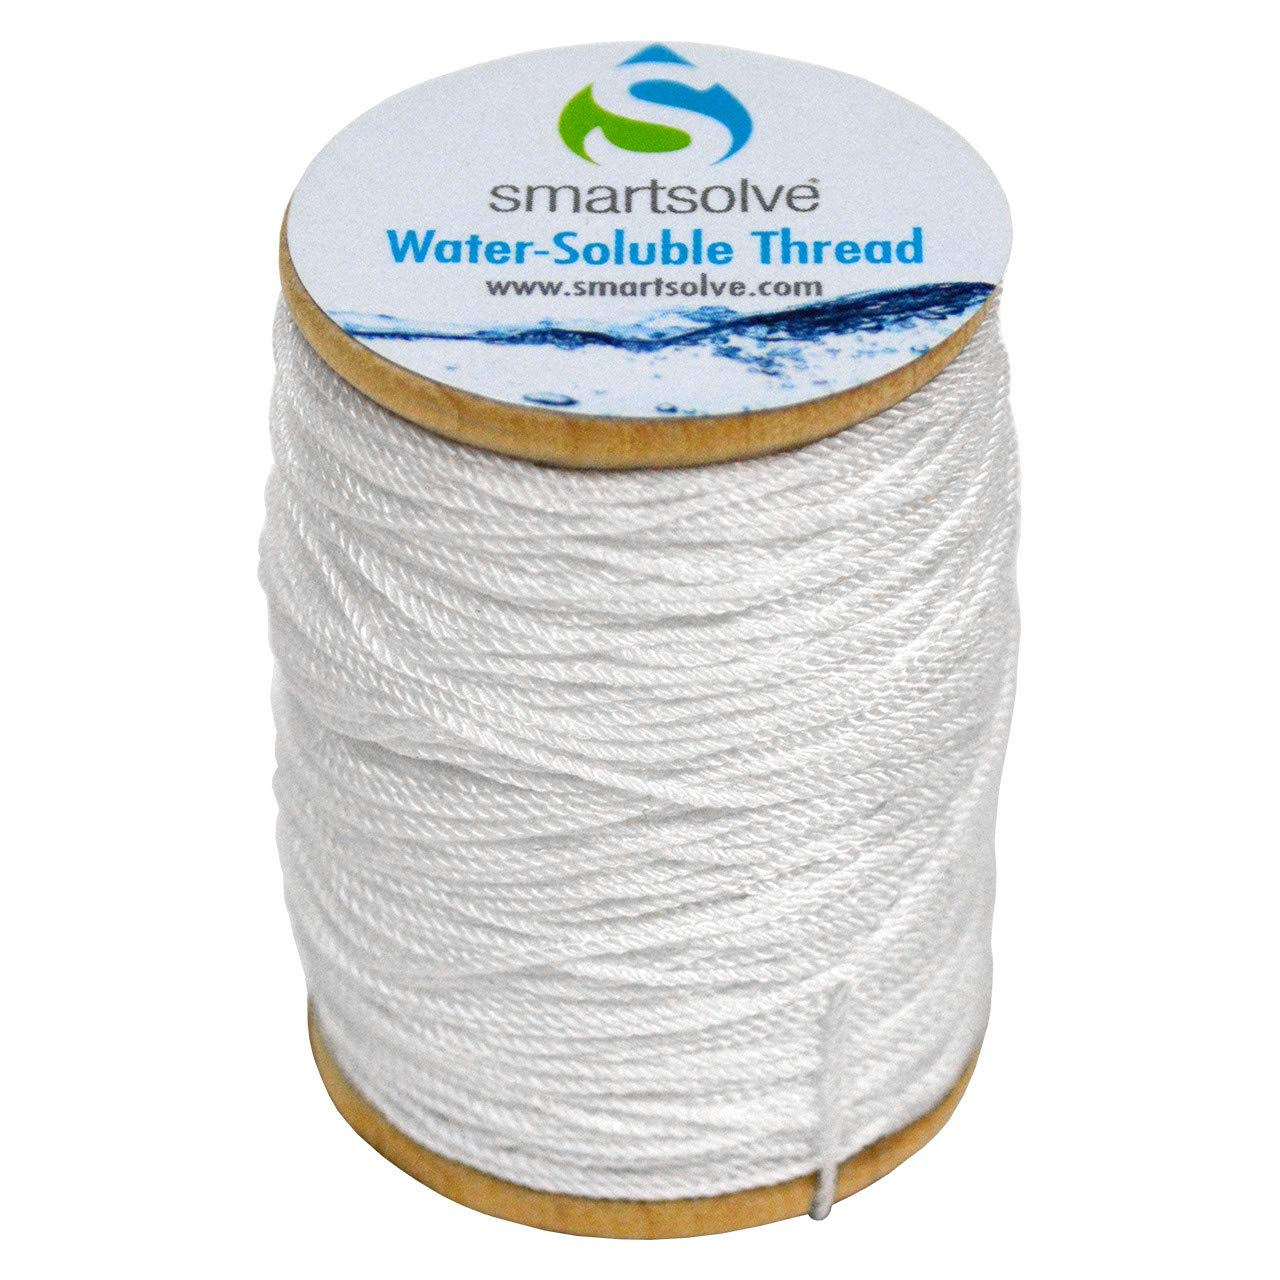 SmartSolve Water-Soluble White Thread.5mm x 75yd